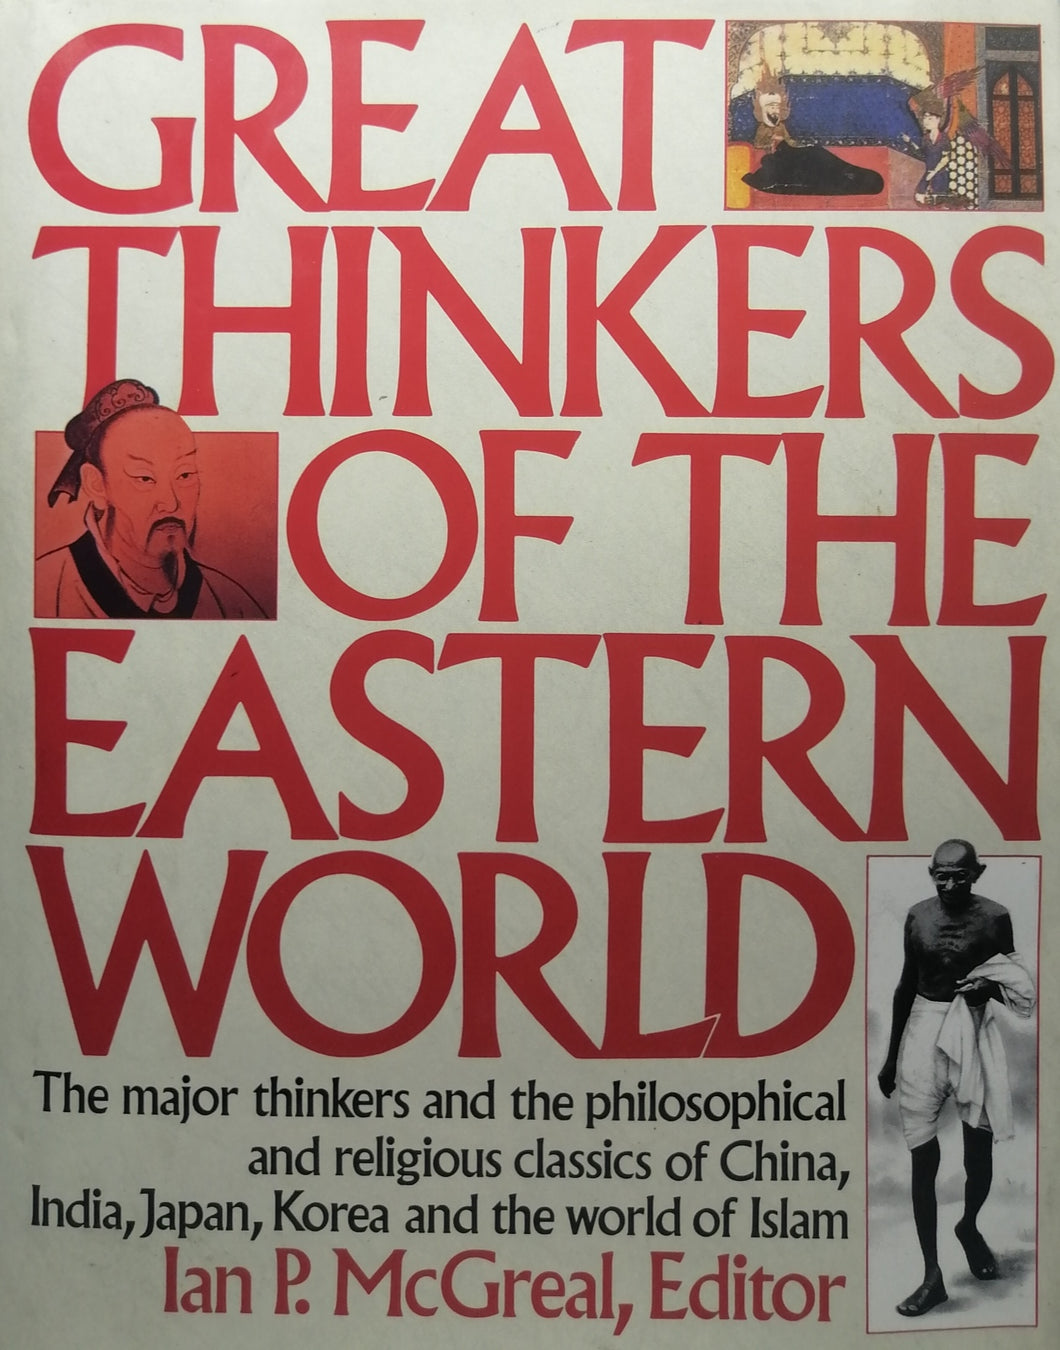 Great Thinkers Of The Eastern World by Ian P. McGreal